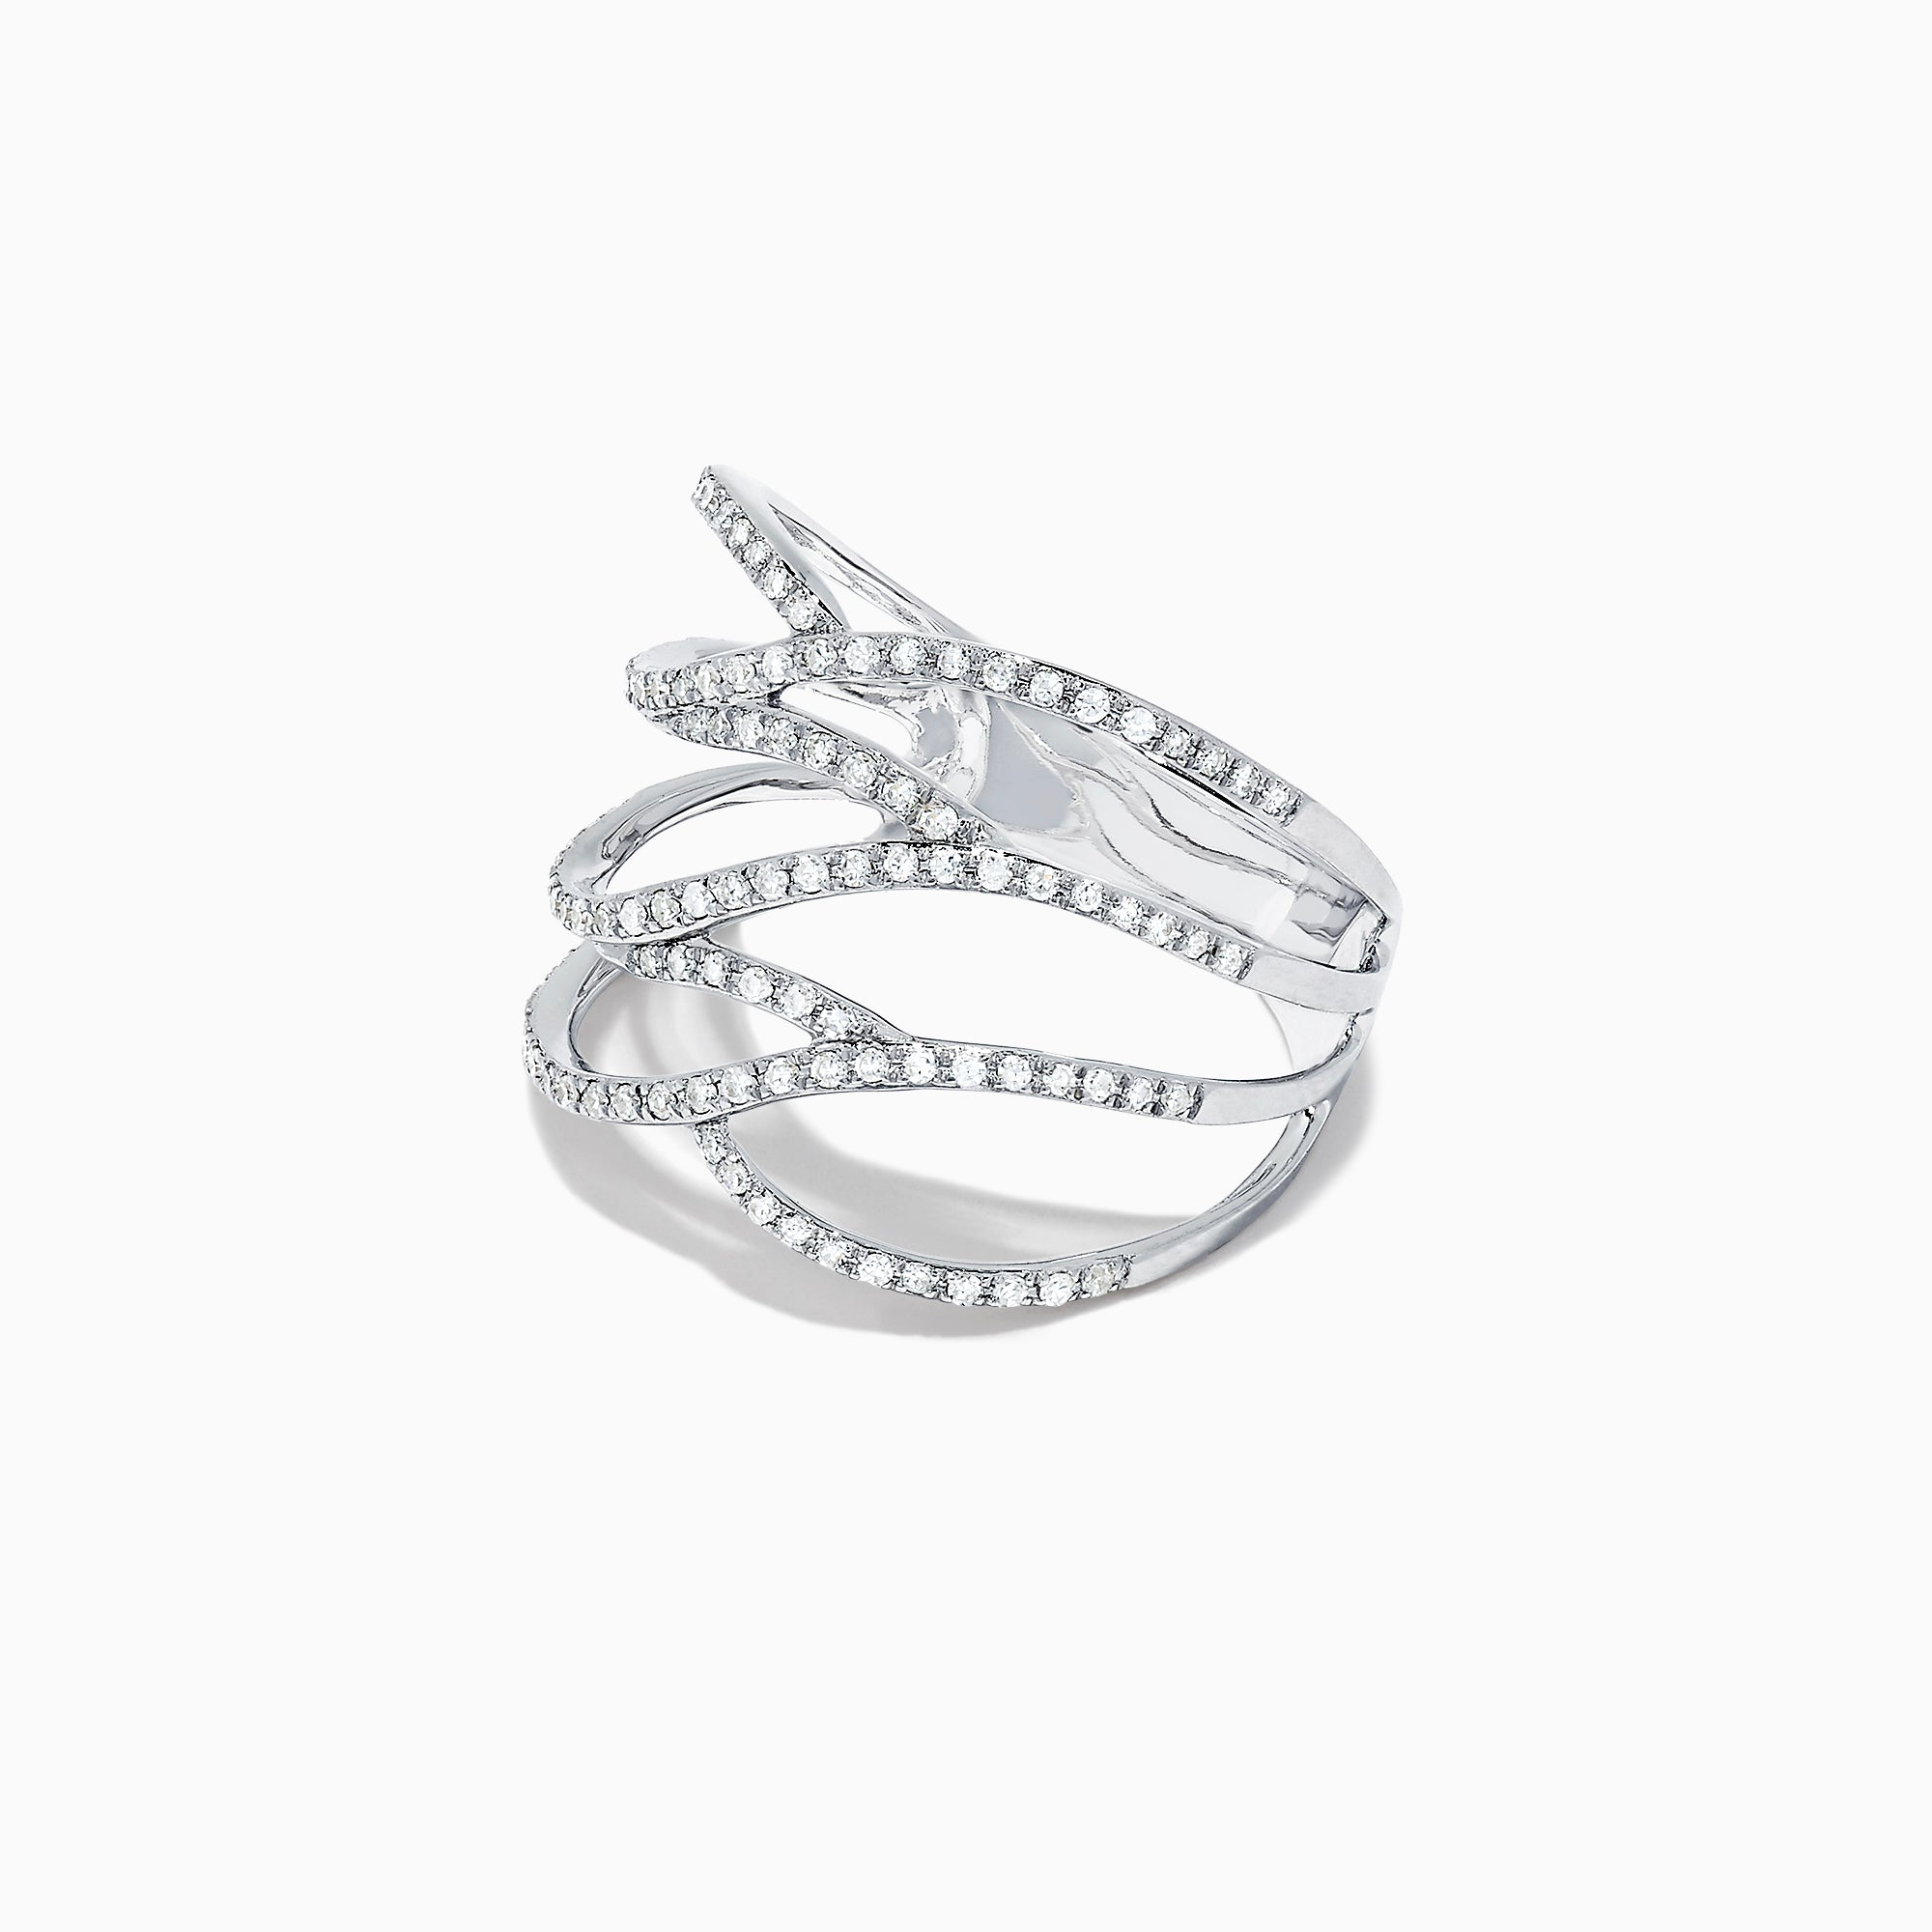 Effy Pave Classica 14K White Gold Diamond Fashion Ring, 0.43 TCW